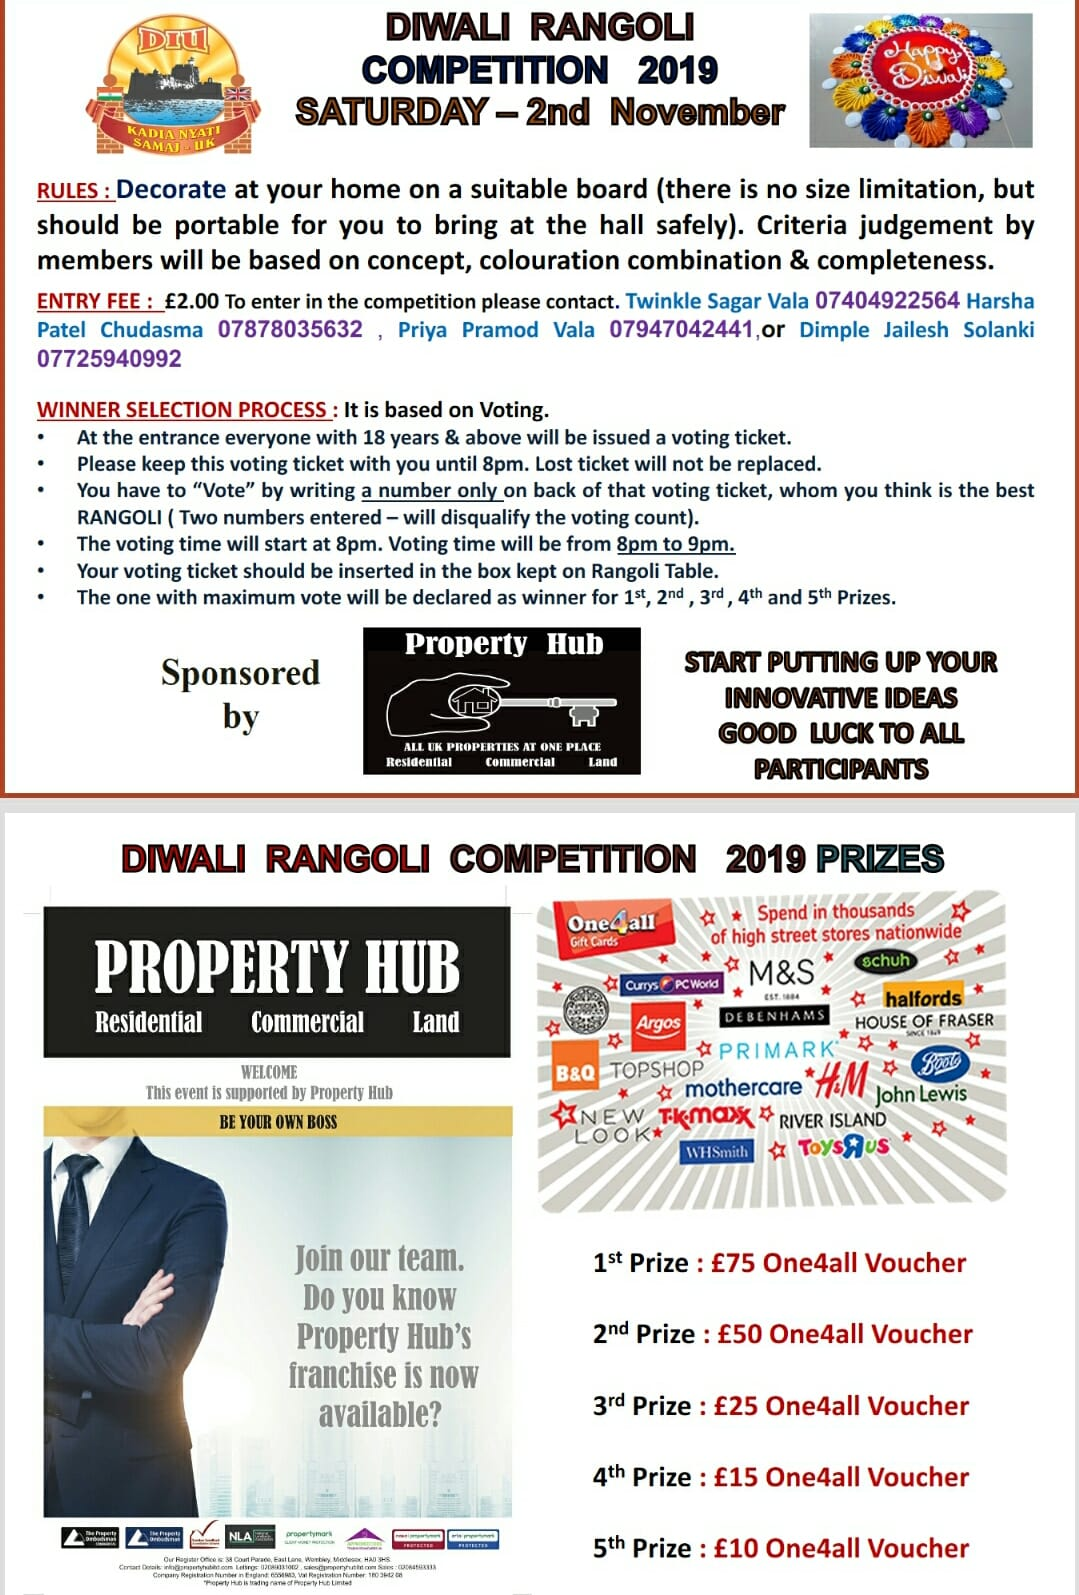 PROPERTY HUB IS PROUD TO SPONSOR DKNS-UK DIWALI RANGOLI COMPETITION